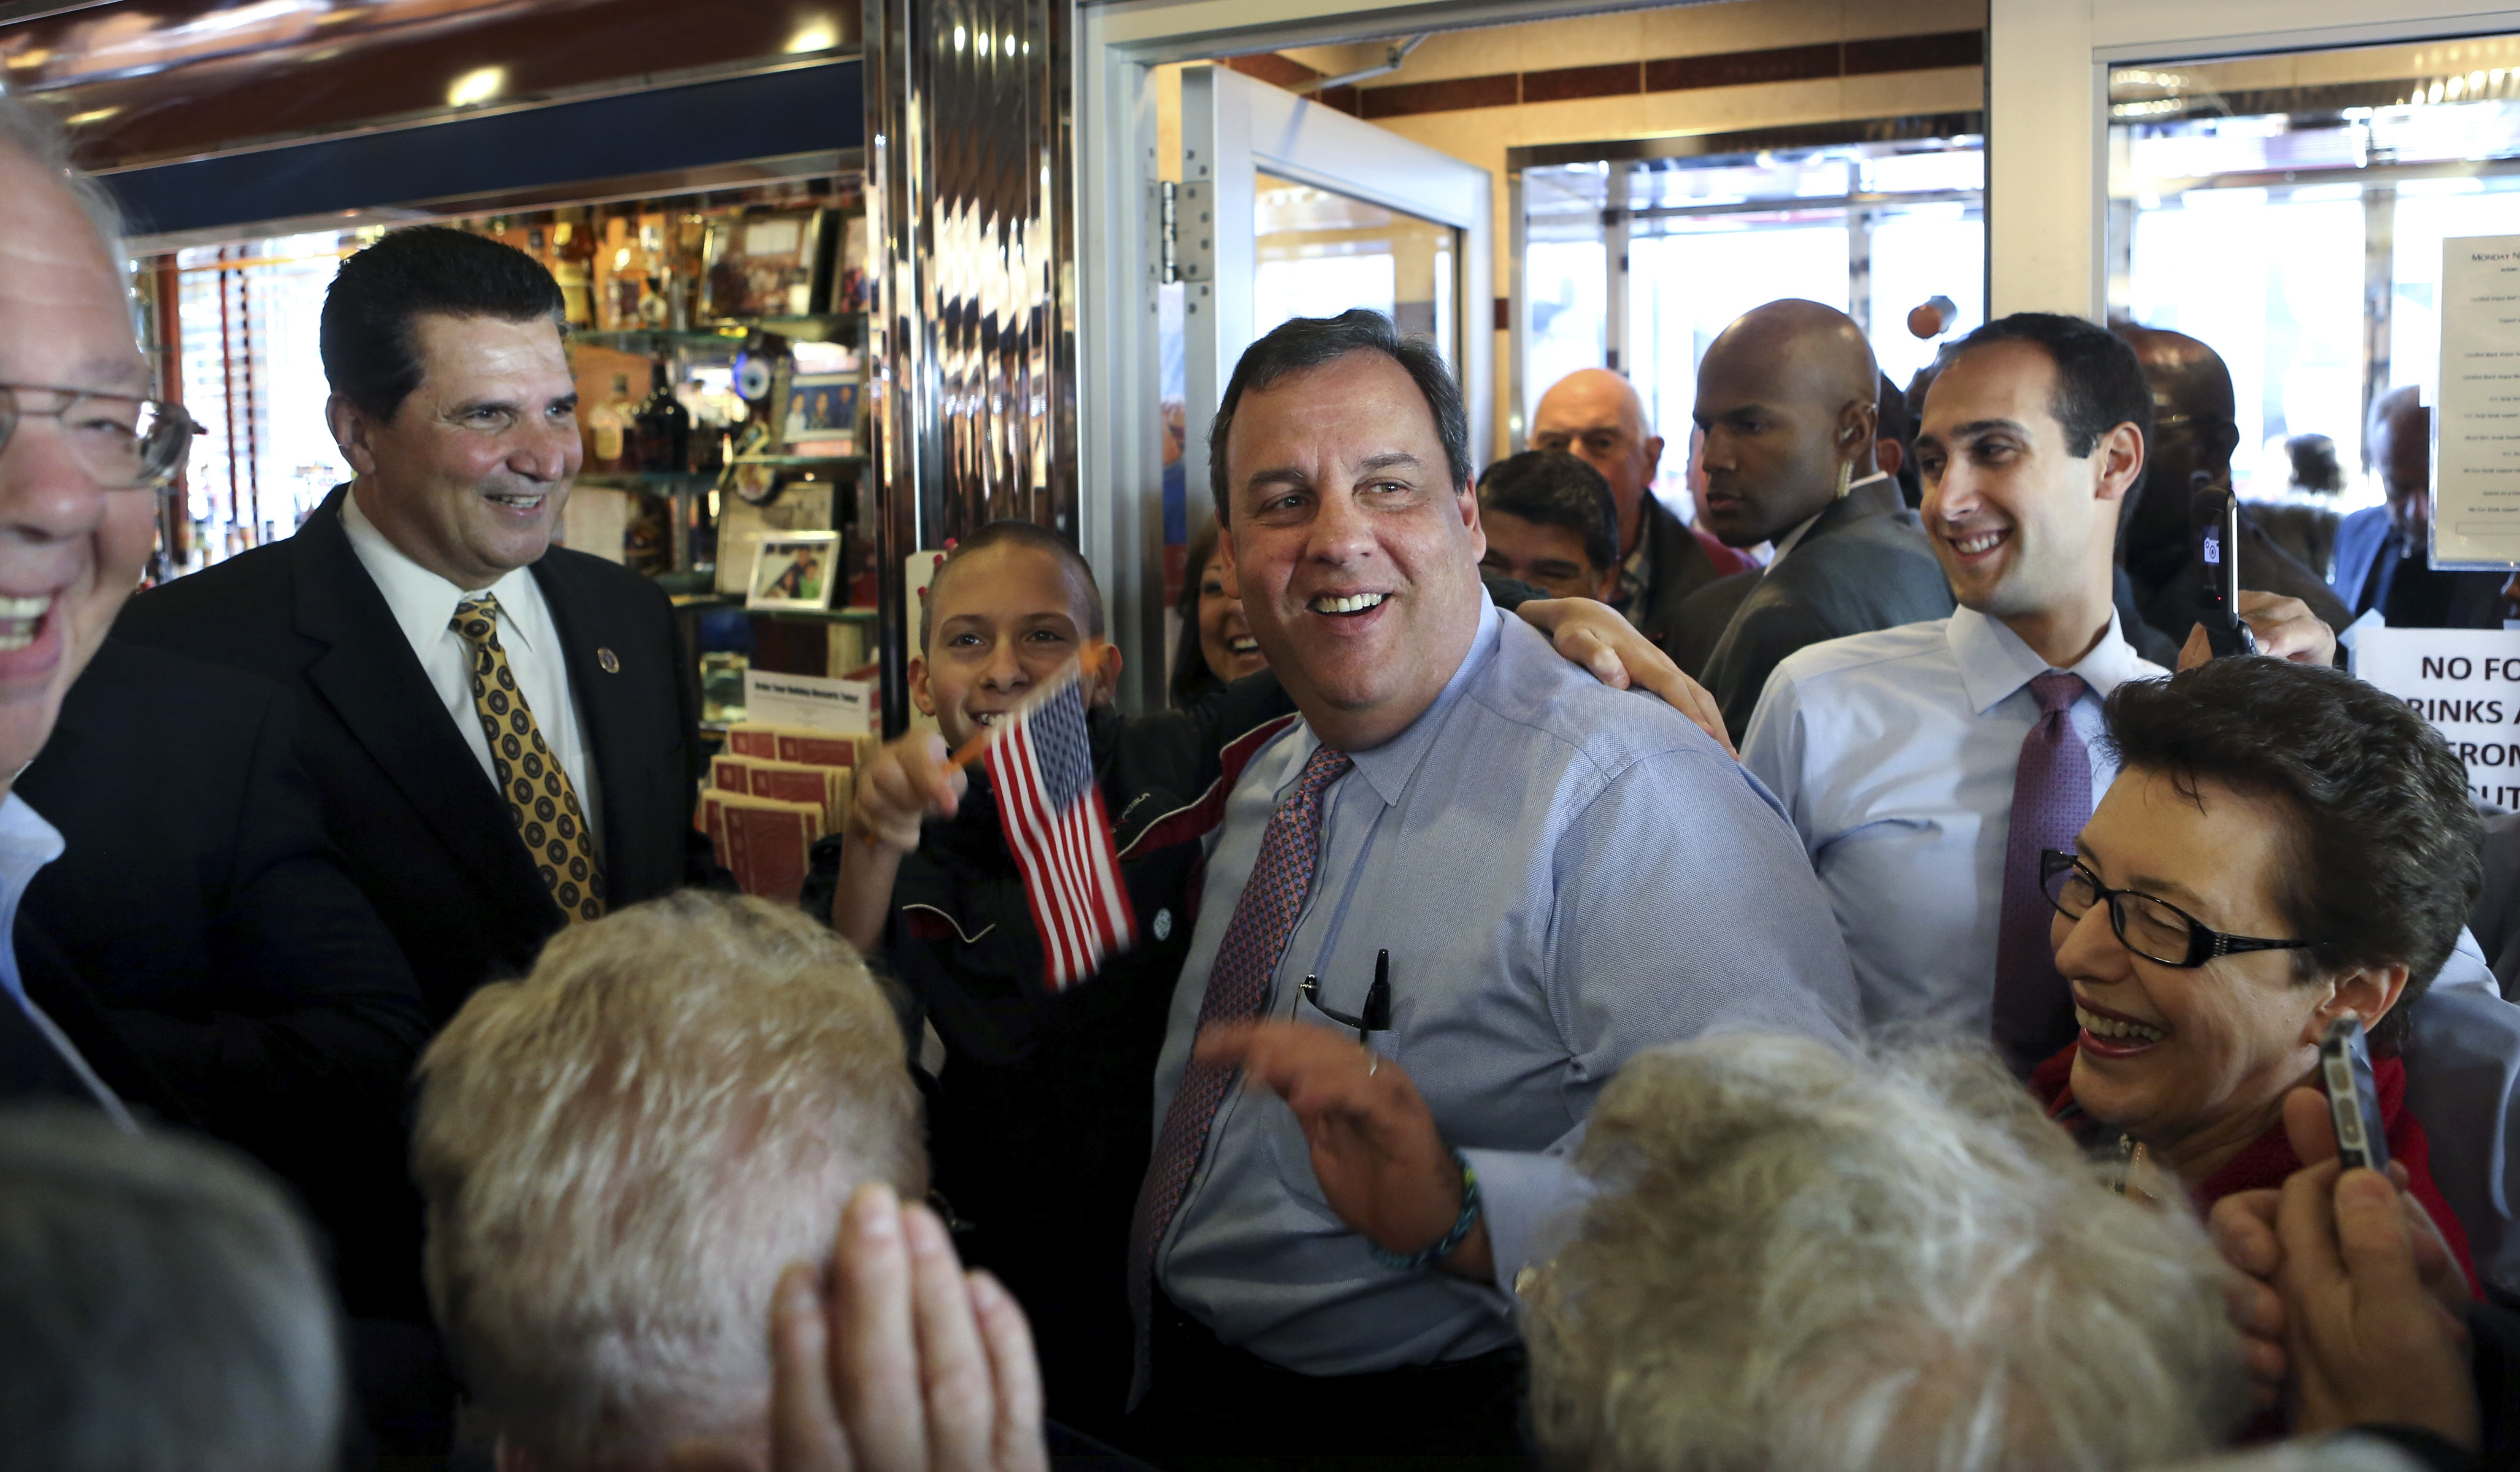 New Jersey Gov. Chris Christie was on the campaign trail Monday at the Nutley Diner in Nutley, N.J.